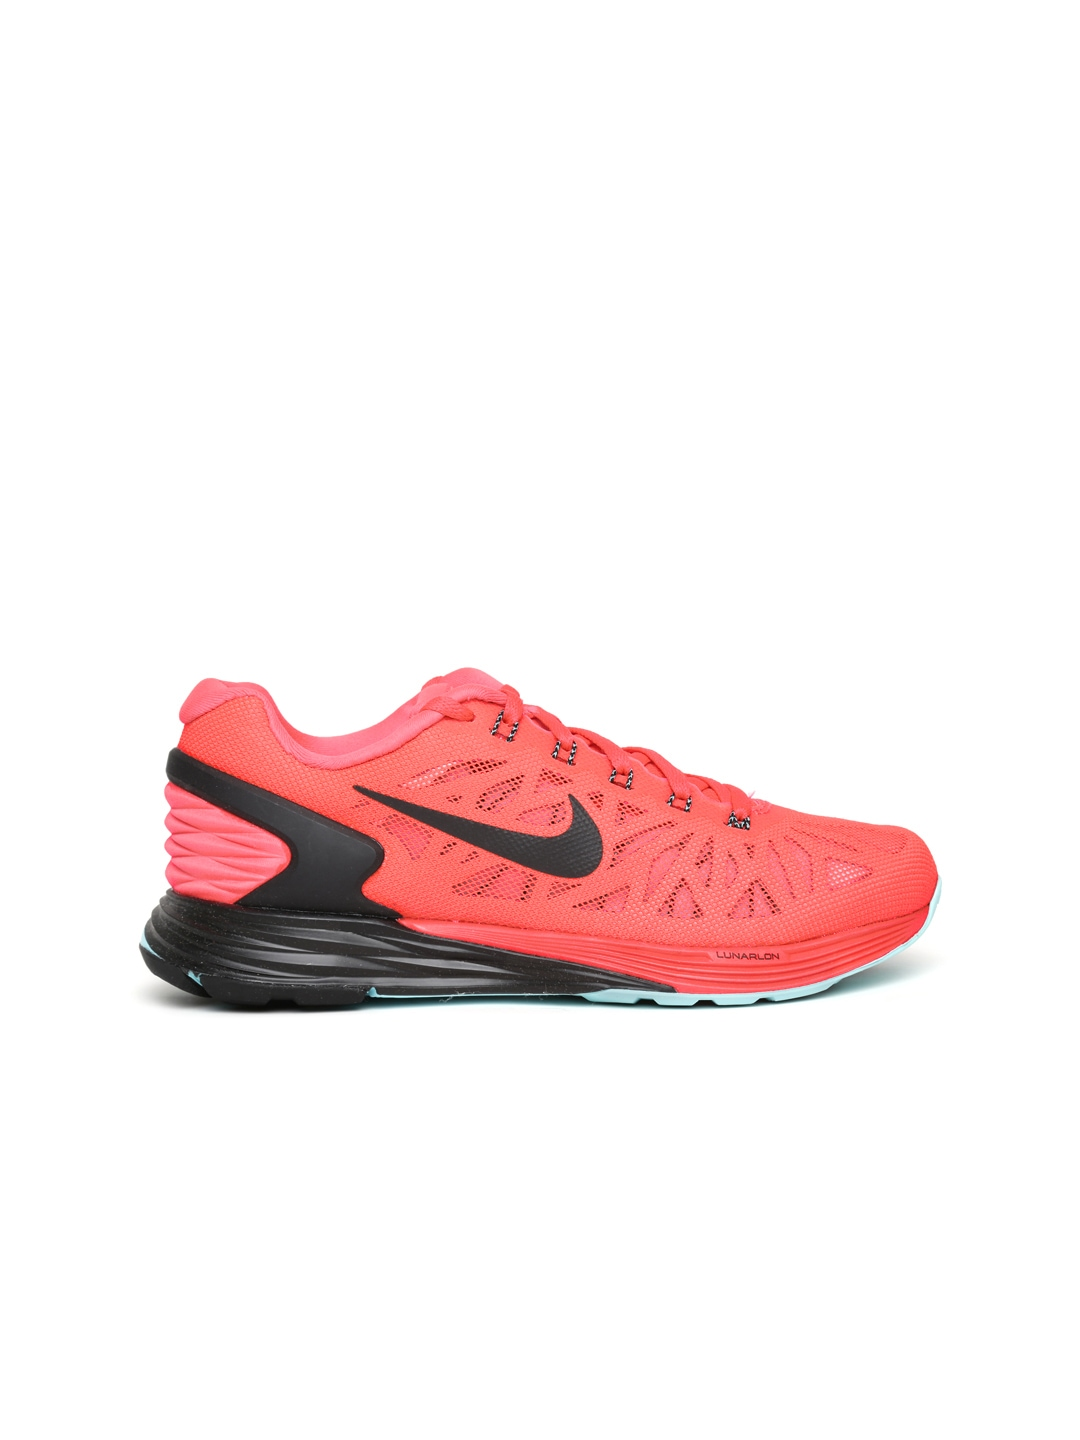 Home Footwear Women Footwear Sports Shoes Nike Sports Shoes